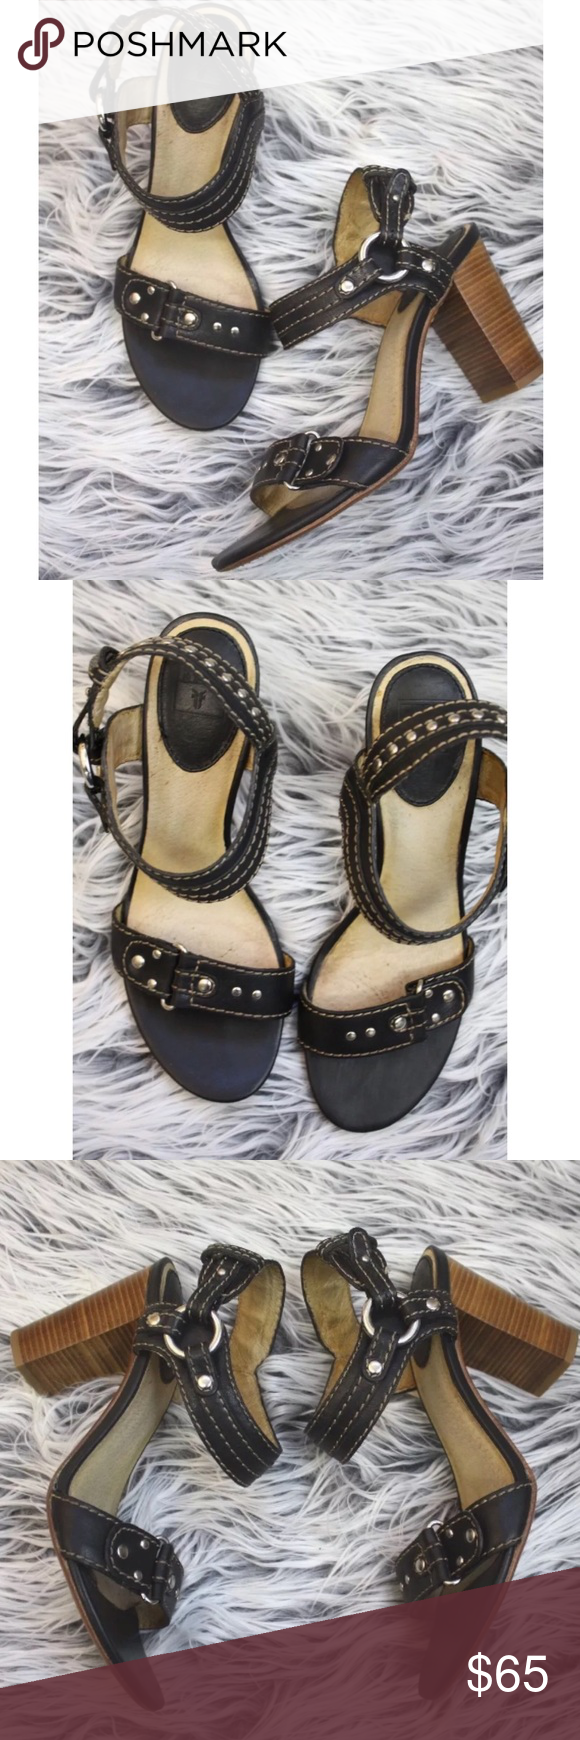 """FRYE April Studded Rings Heeled Sandal $280  FRYE April Studded Rings Sandal  Sz 8.5 M  Black   Stacked wooden heel supports a rich leather city sandal distinctively styled with metal studs. Adjustable strap with prong closure. Approx. heel height: 3 1/2"""". Leather upper, lining and sole. By Frye; imported.  Minor wear on sole.  There is some very small hairline cracking on footbed.  Please see photos. Frye Shoes Heels"""